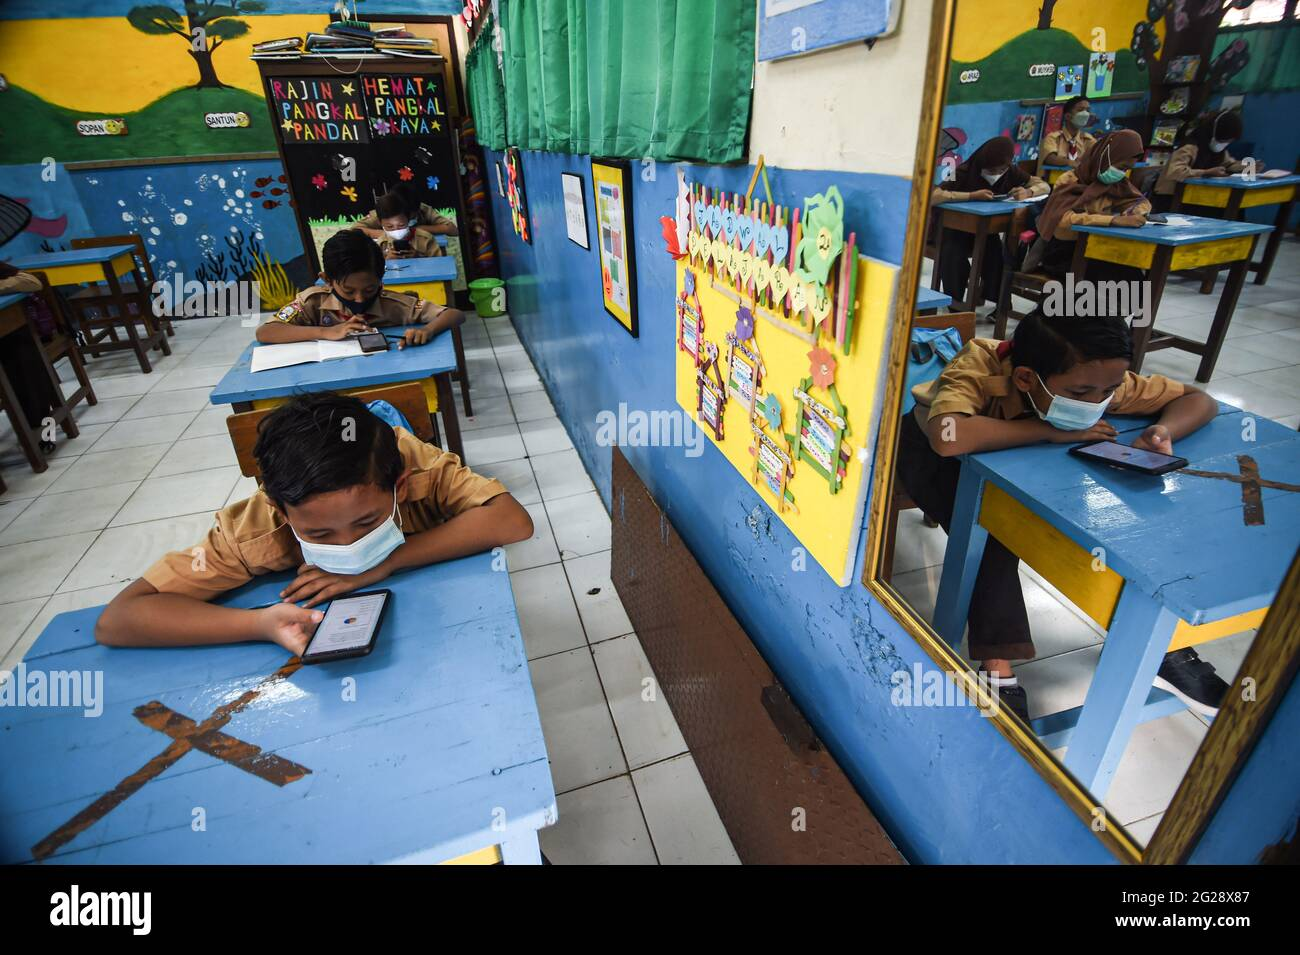 Jakarta, Indonesia. 9th June, 2021. Elementary students wearing face masks are seen in a classroom during a trial face-to-face learning activity amid the COVID-19 outbreak at a school in Jakarta, Indonesia, June 9, 2021. Credit: Agung Kuncahya B./Xinhua/Alamy Live News Stock Photo